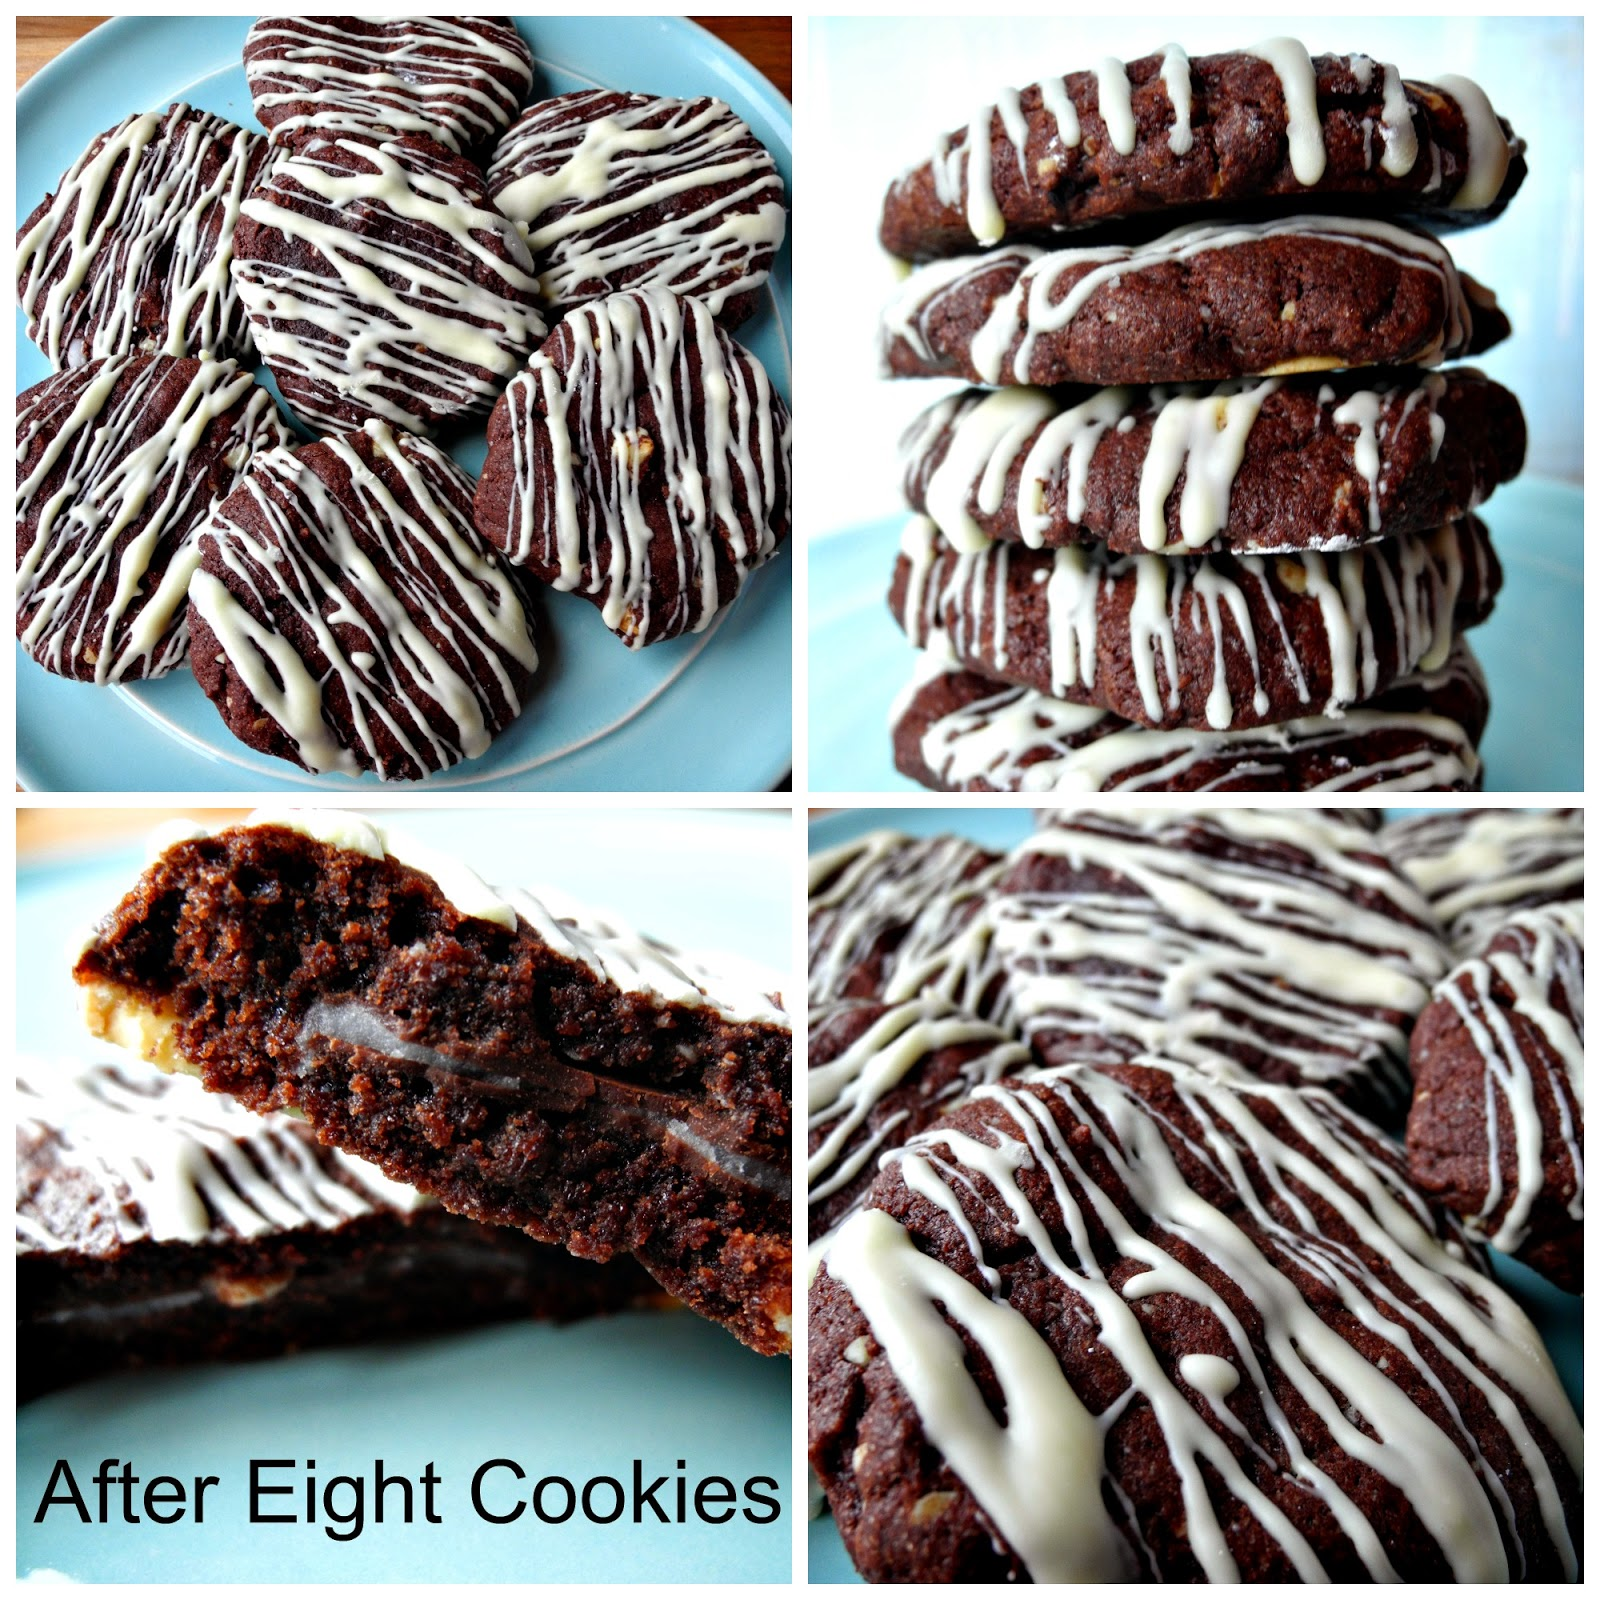 After Eight Cookies